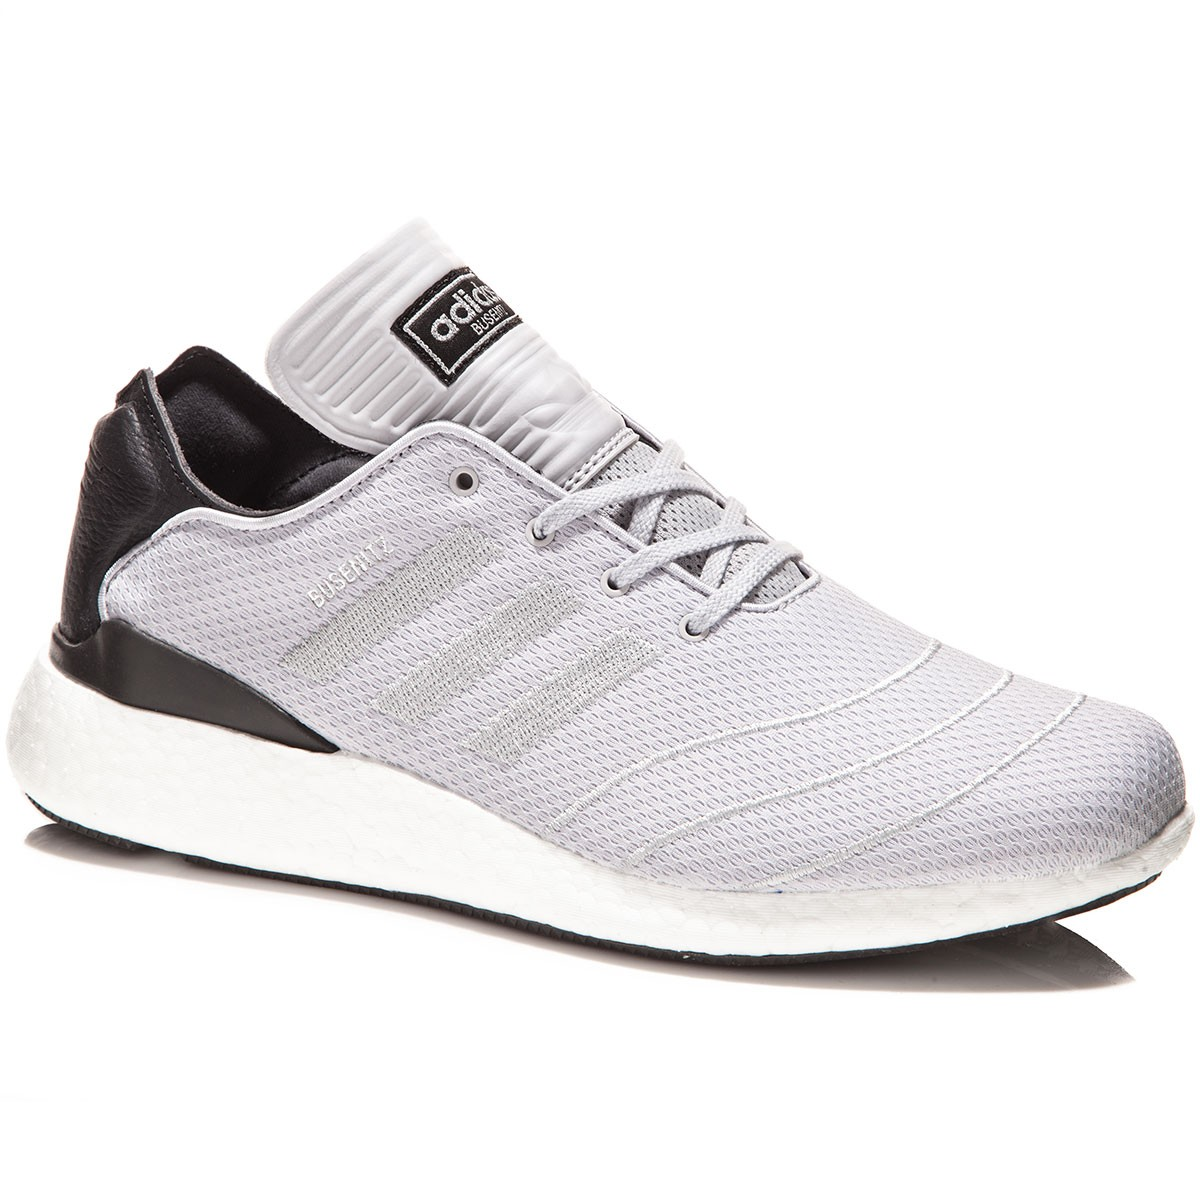 Adidas Busenitz Pure Boost Shoes - Grey/Grey/Silver Metallic - 8.0